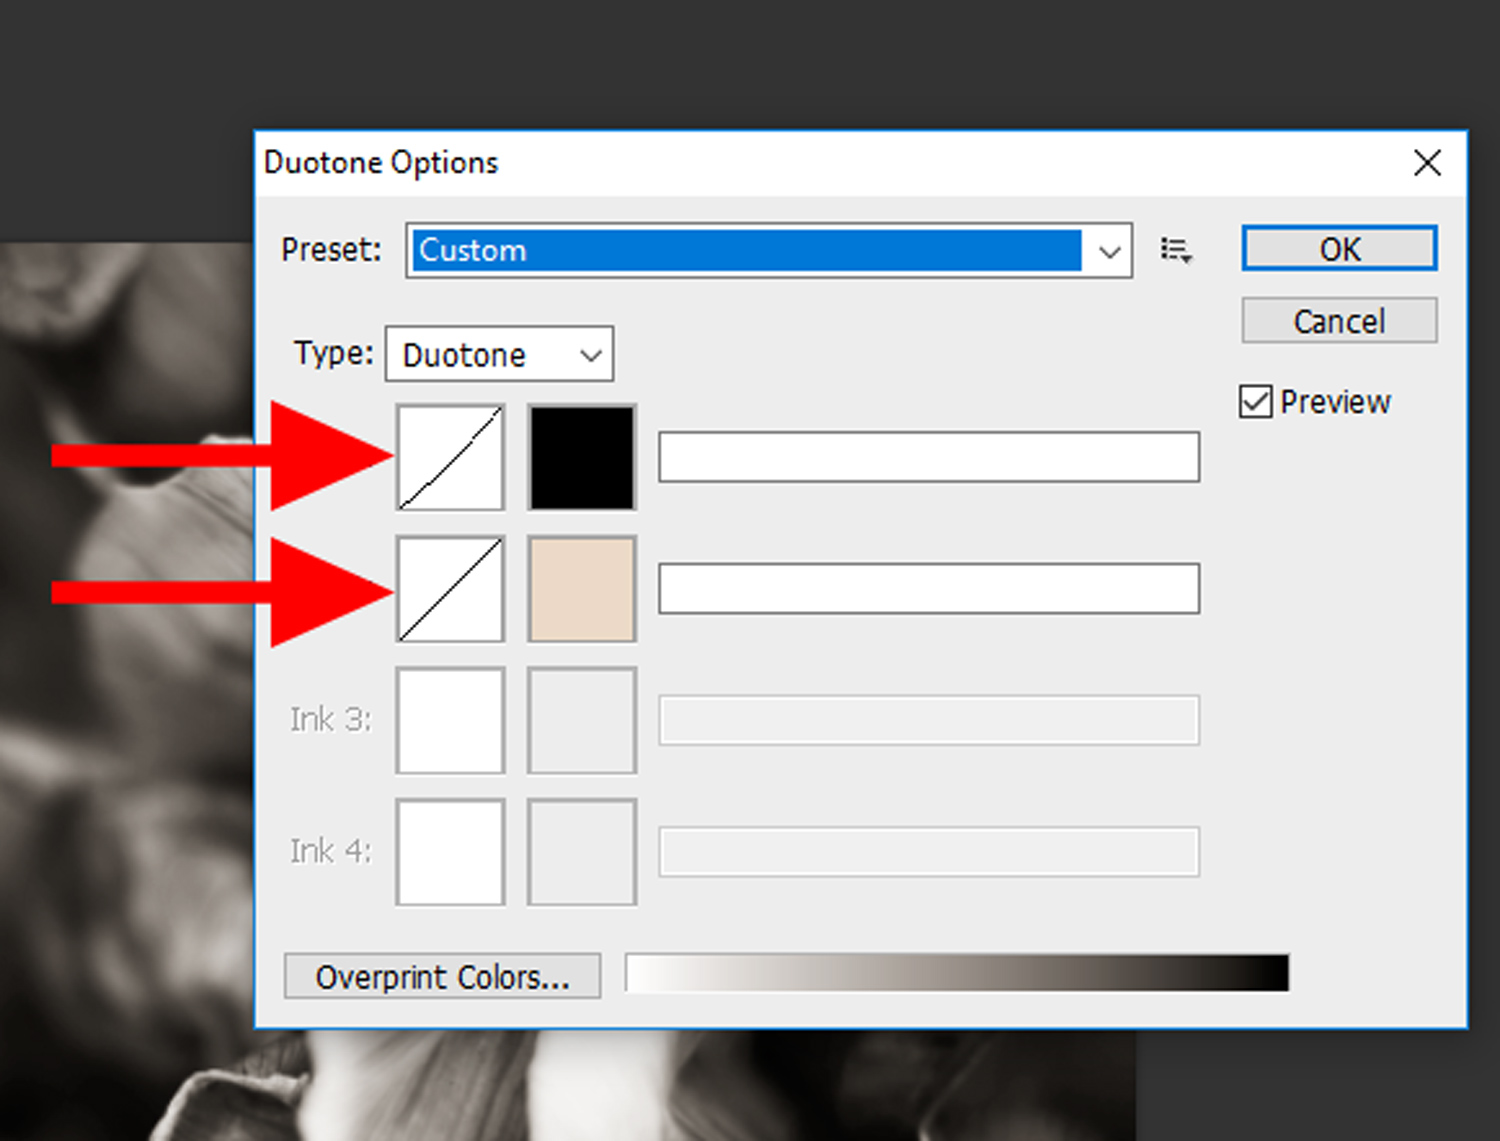 14 - How to Duotone a Photograph in Photoshop